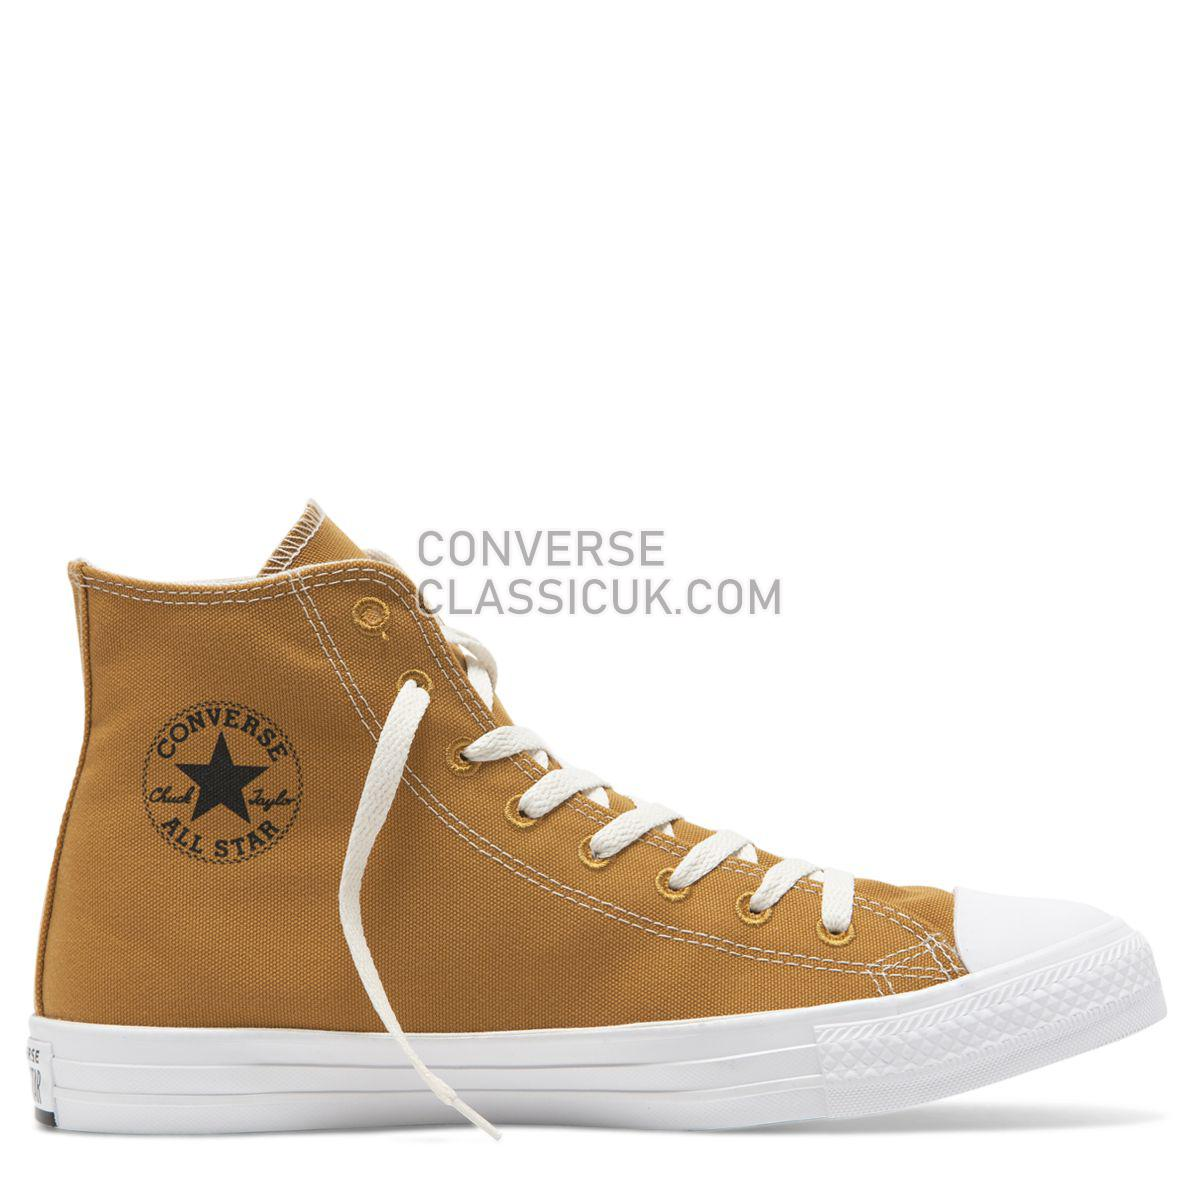 Converse Chuck Taylor All Star Renew Canvas High Top Wheat Mens Womens Unisex 164918 Wheat/Black/White Shoes